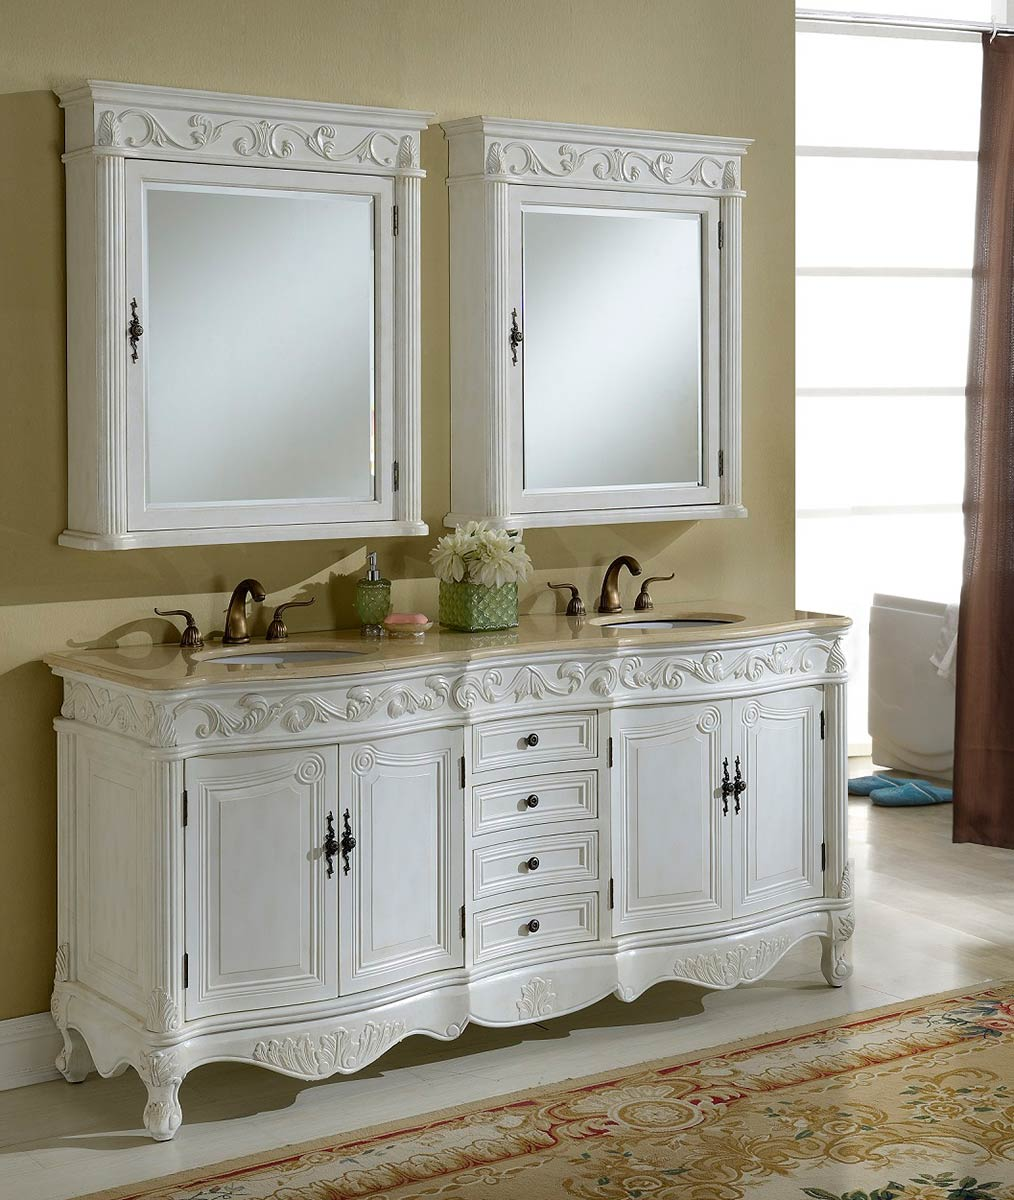 Chelsea Home Villa 72-inch Vanity with Medicine Cabinet - Antique White